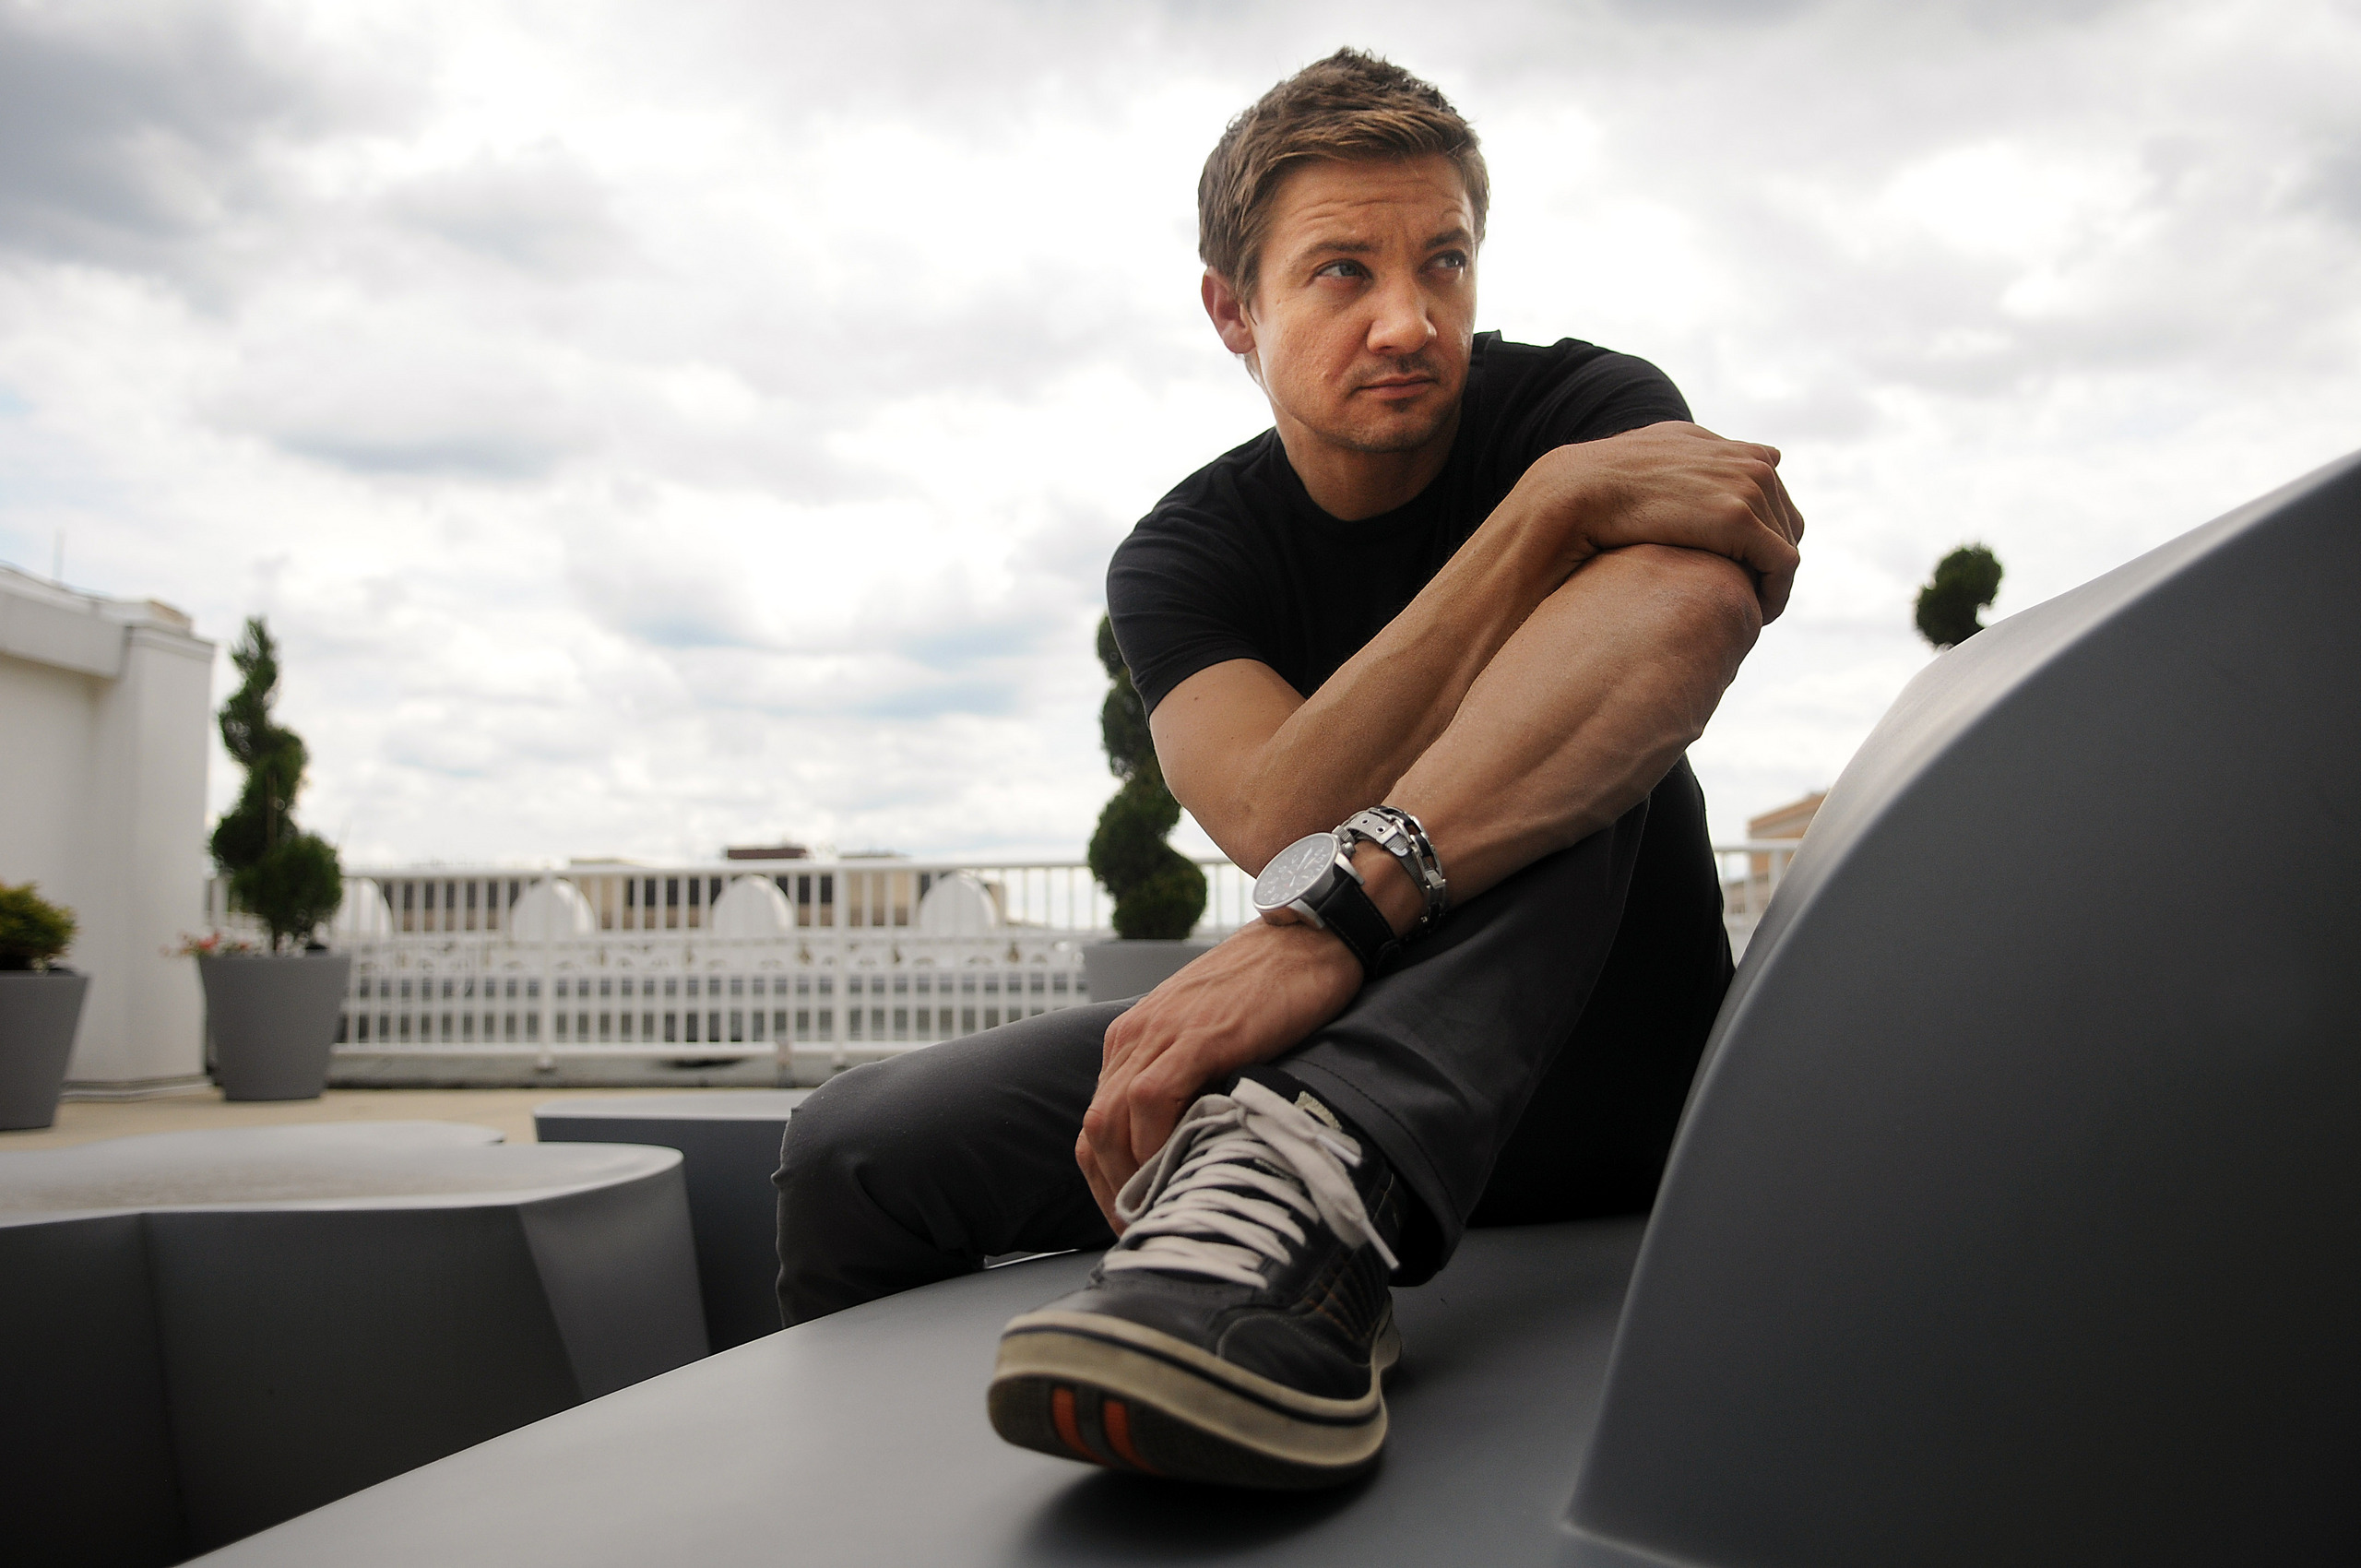 Jeremy Renner Widescreen HD Wallpaper 57224 2560x1700px 2560x1700